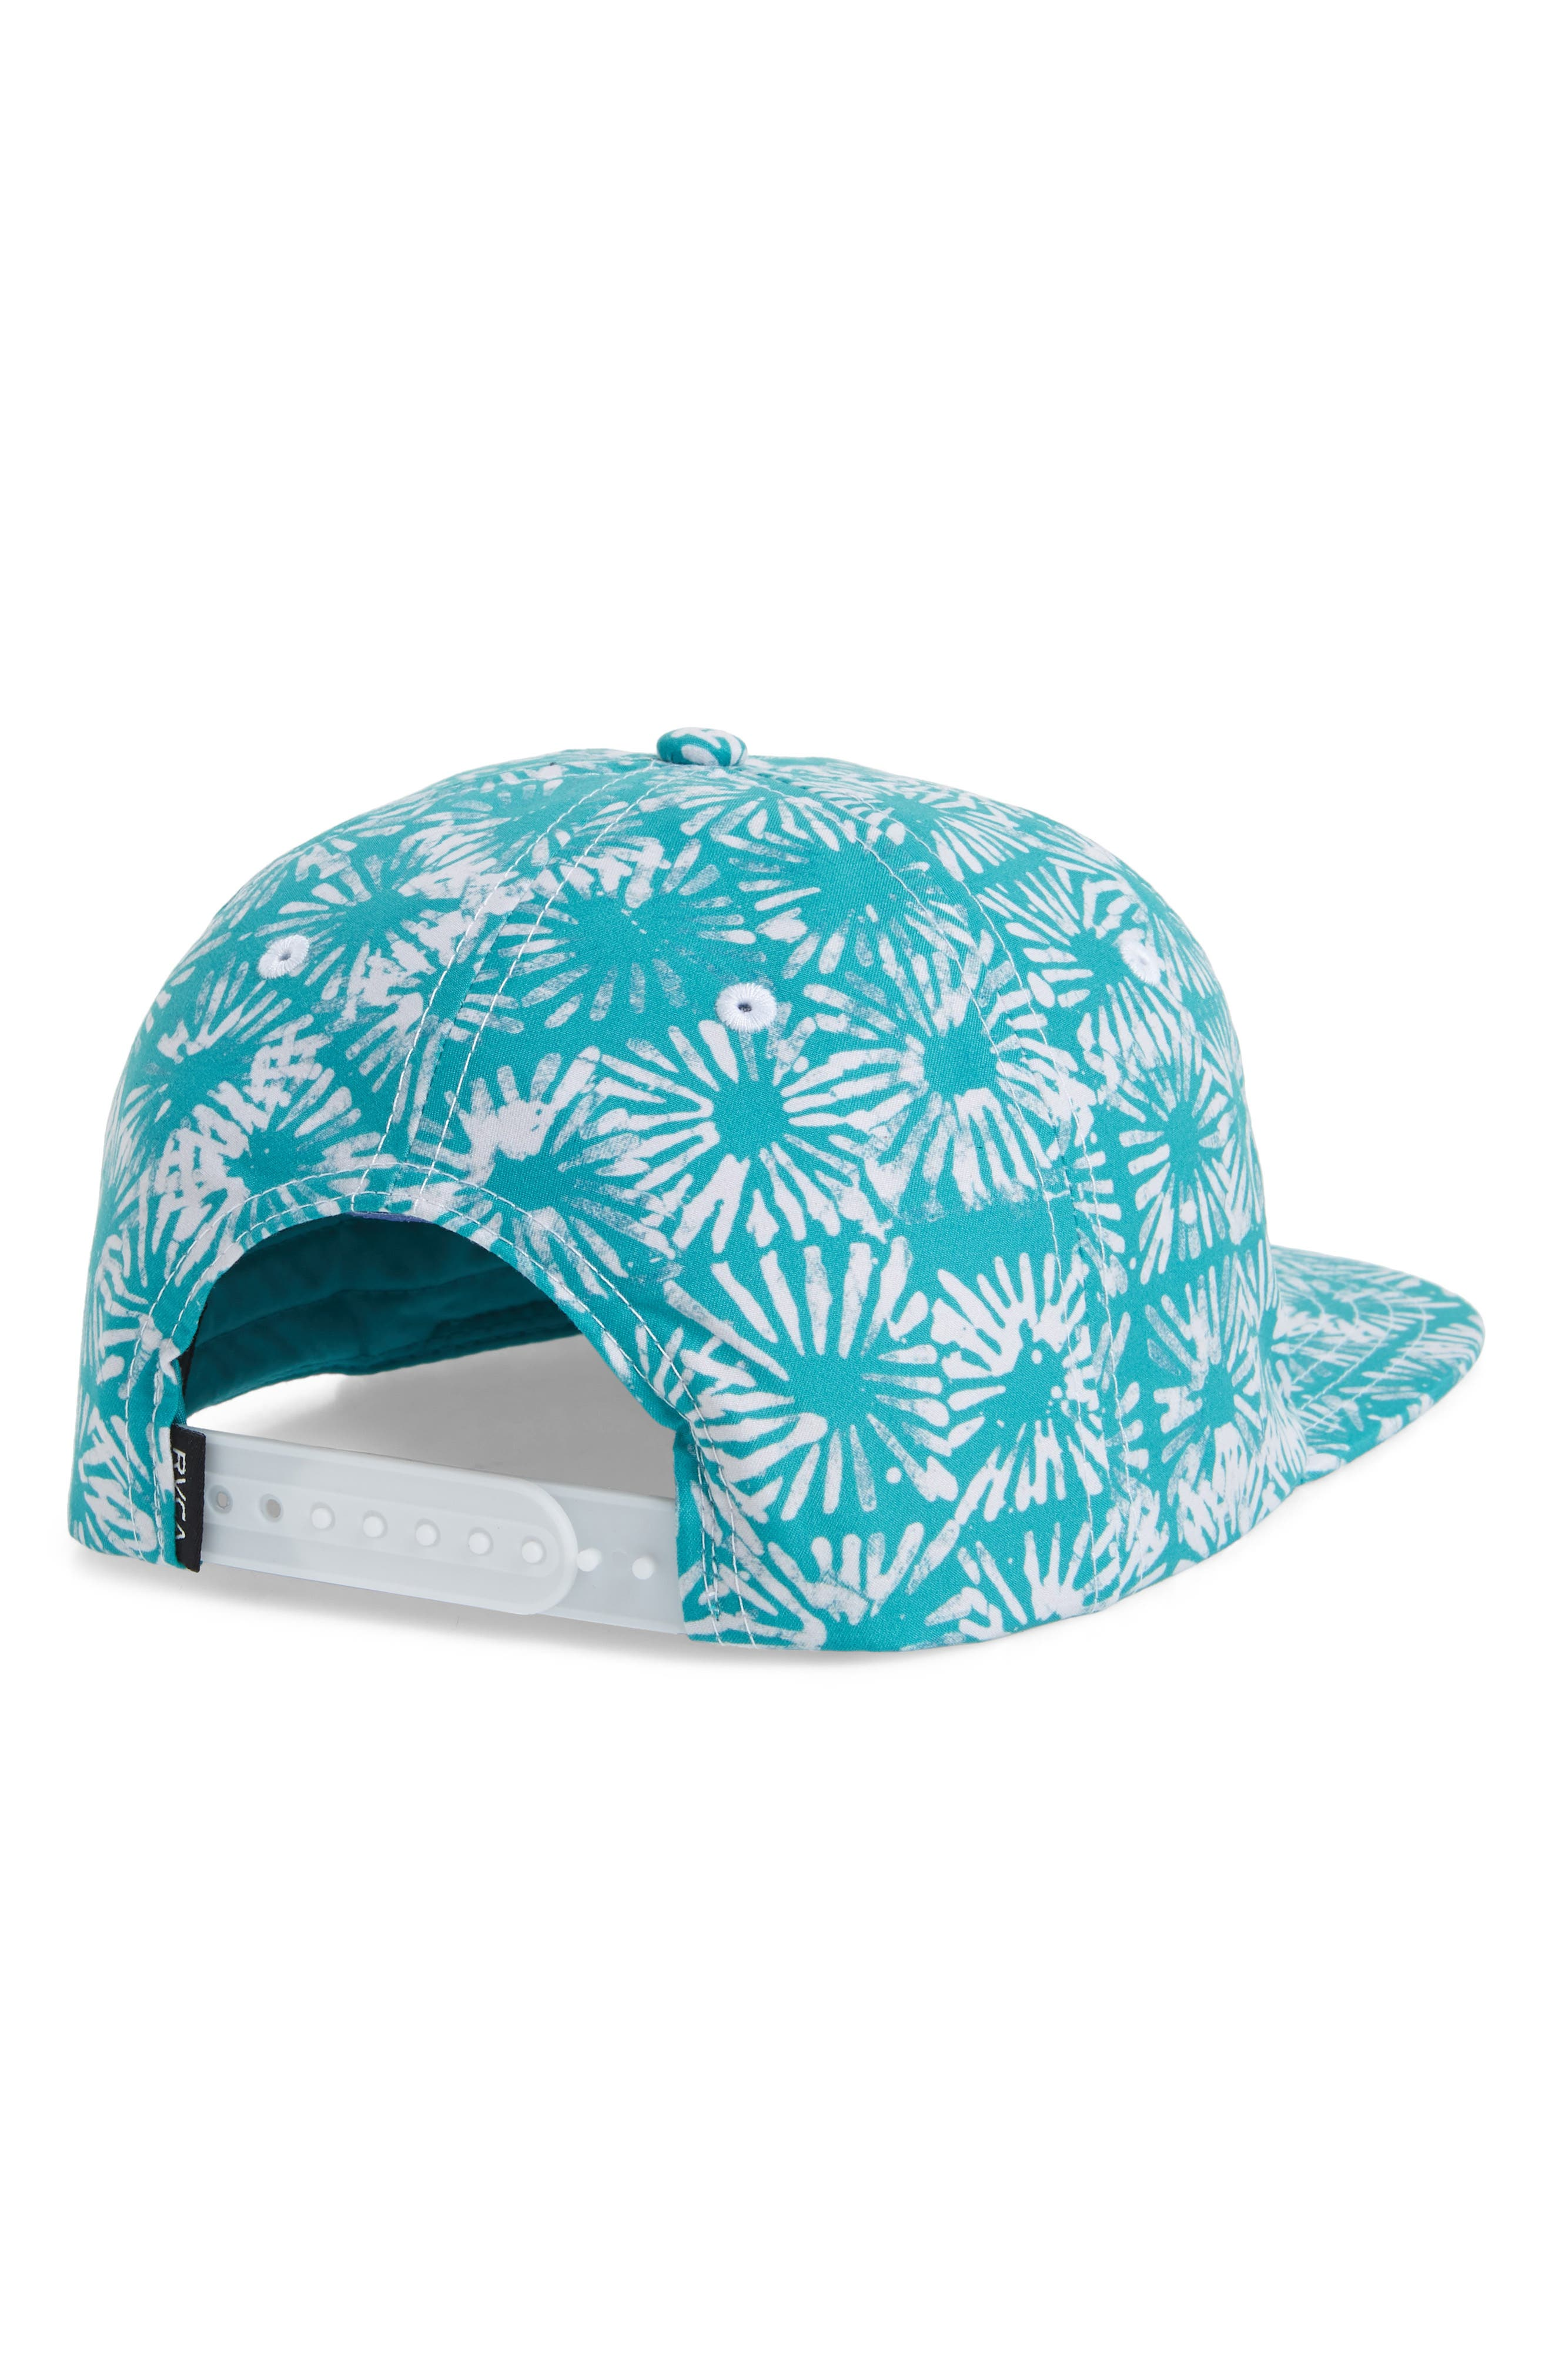 Duh Loris Snapback Cap,                             Alternate thumbnail 2, color,                             Teal